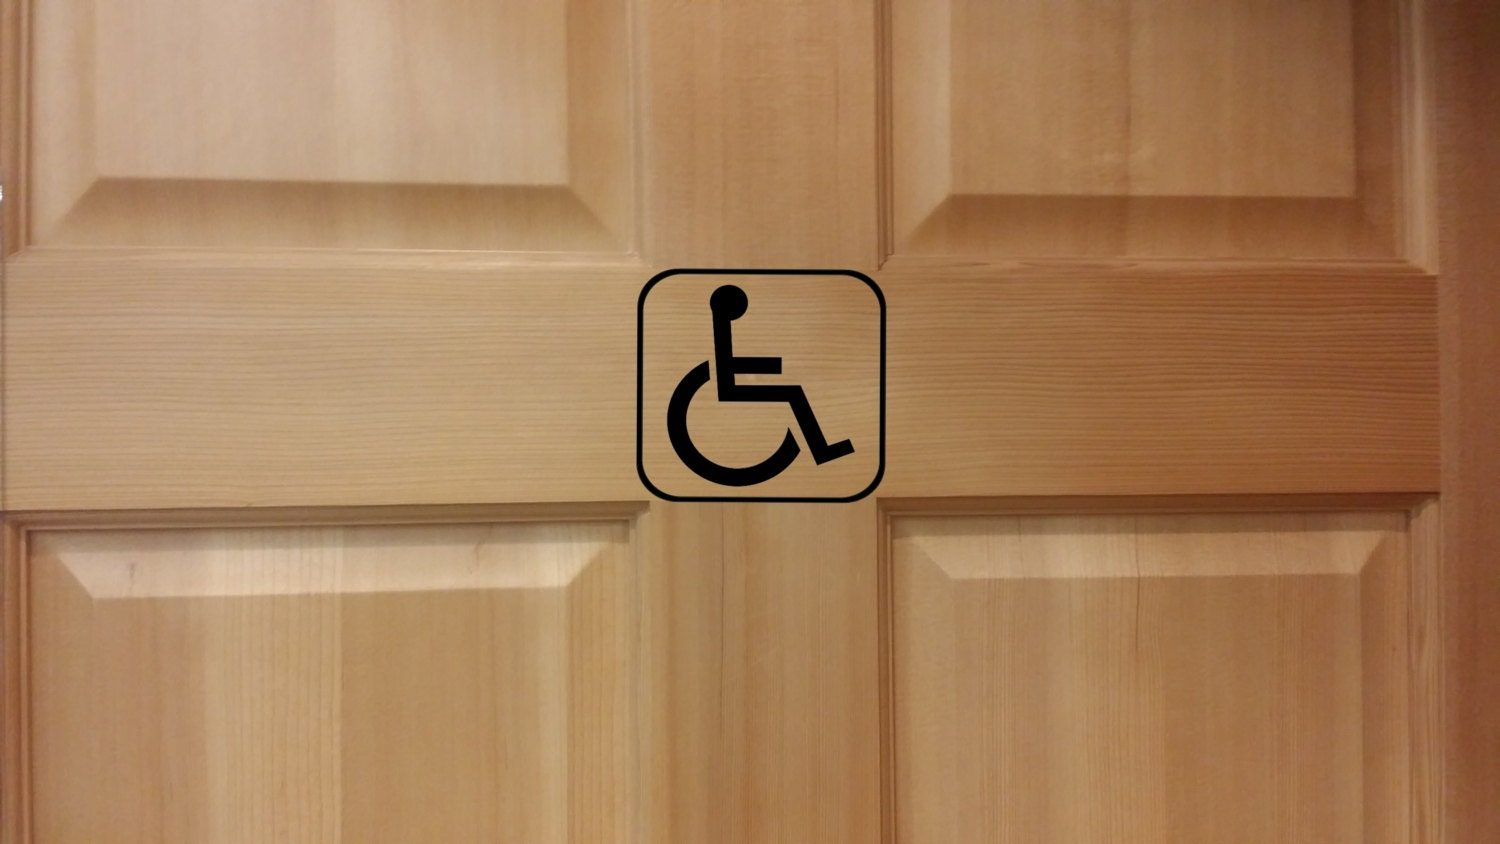 Bathroom Floor Decals : Handicap restroom decal bathroom